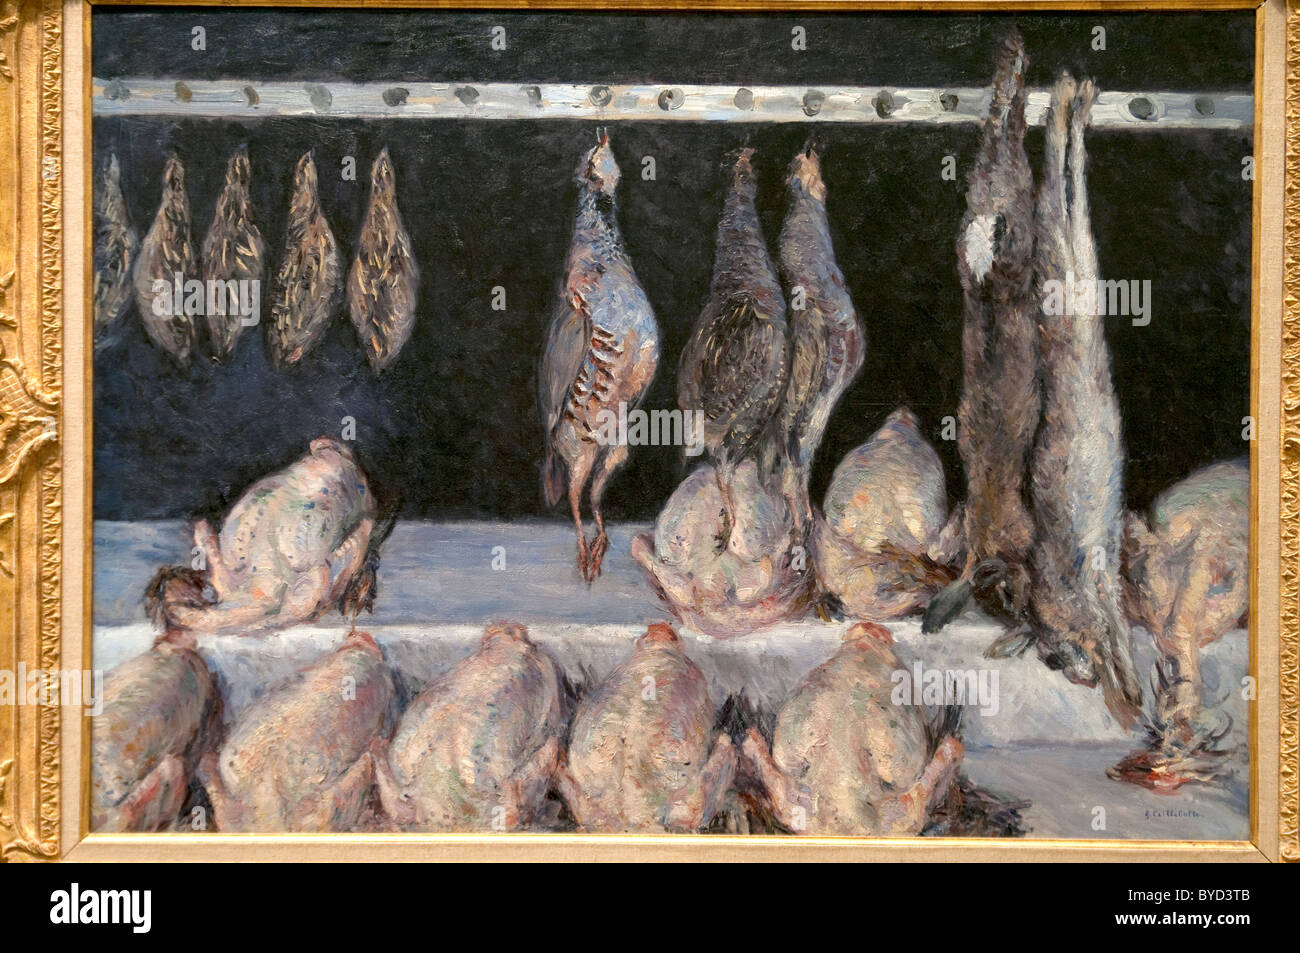 Display of Chickens and Game Birds, ca. 1882, by Gustave Caillebotte - Stock Image